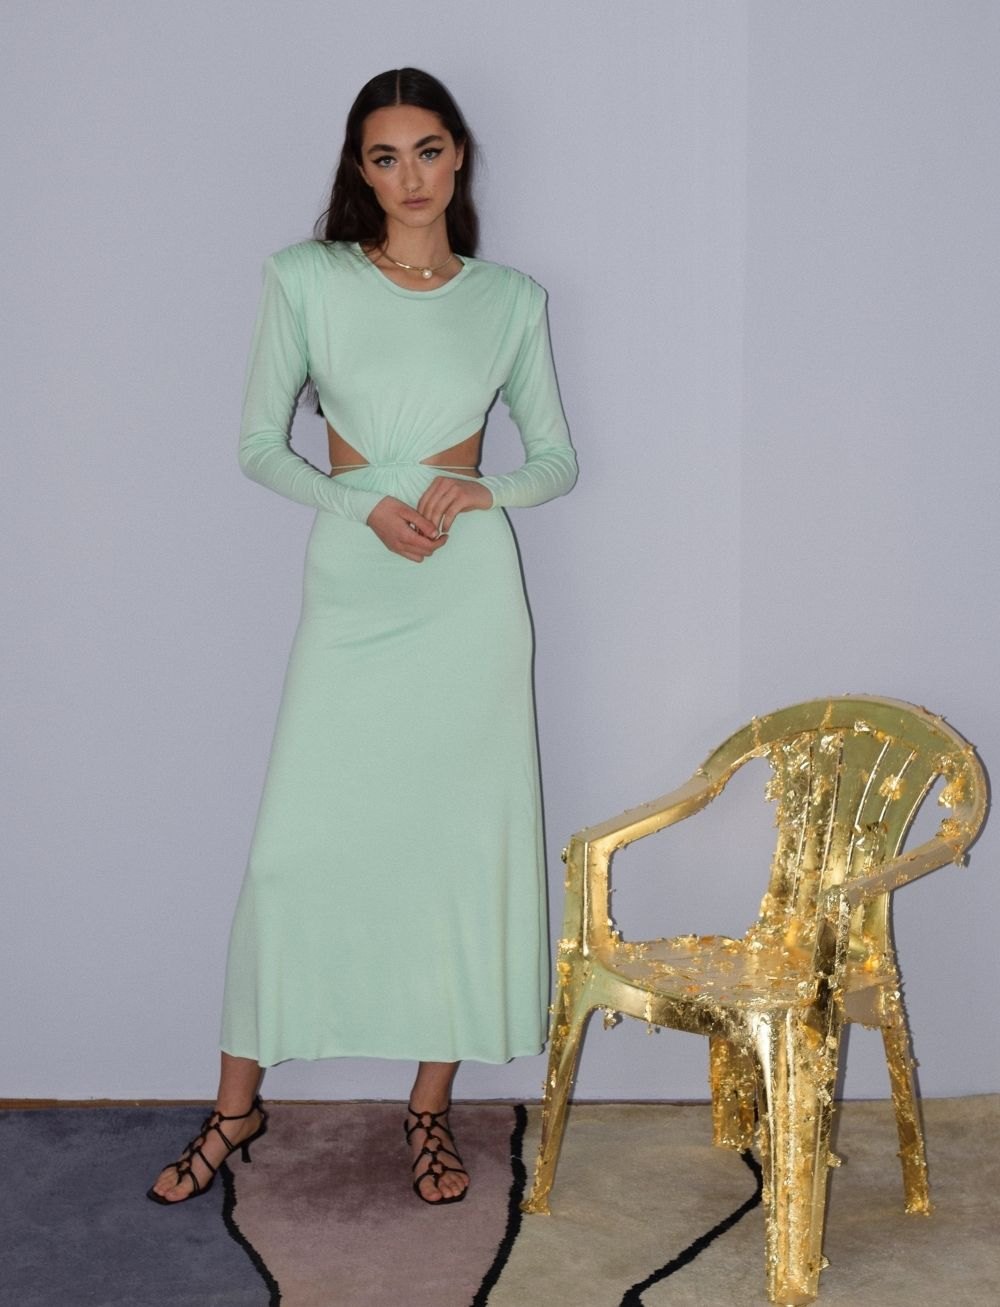 Patricia Wave Dress by Manurí on curated-crowd.com